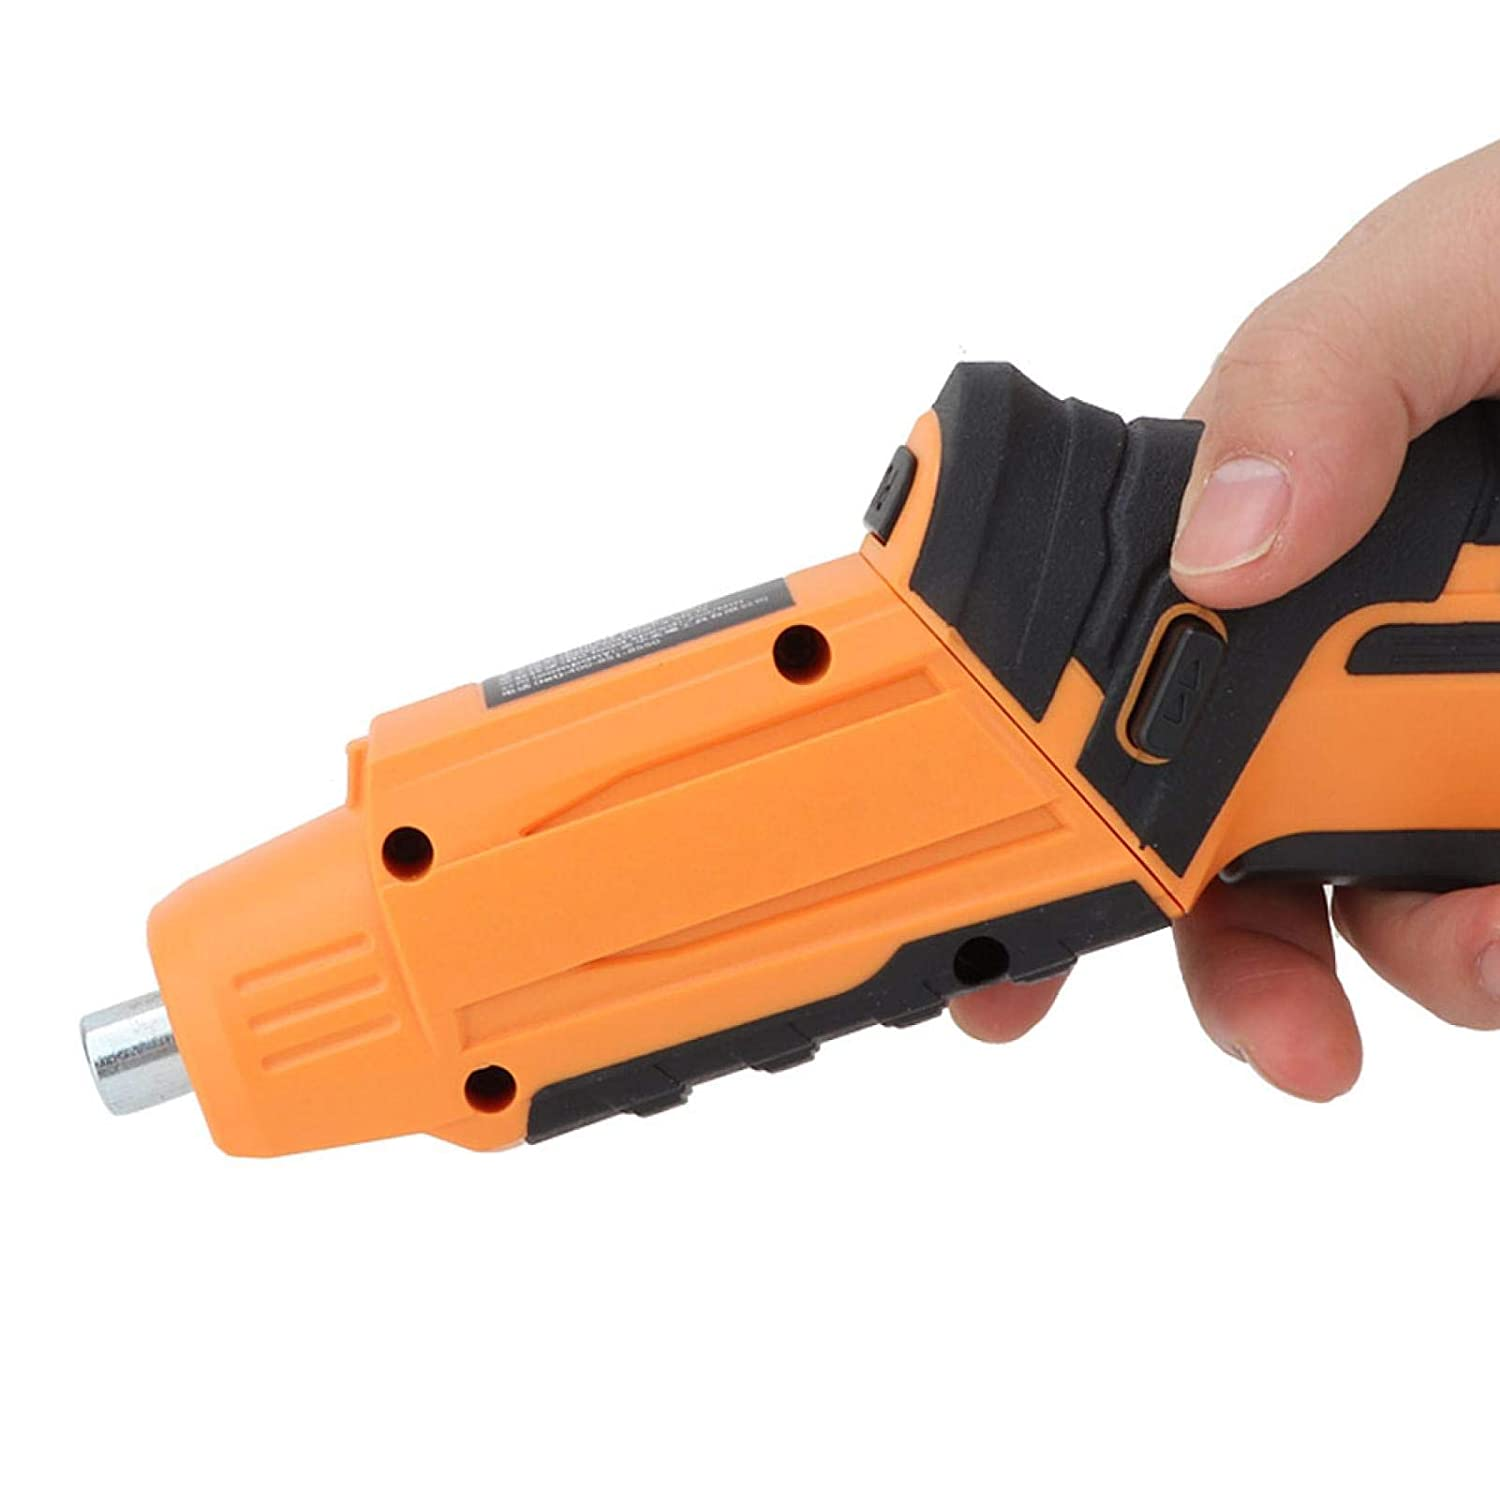 Battery Screwdriver, Rechargeable Electric Screwdriver, 4.5N.M M